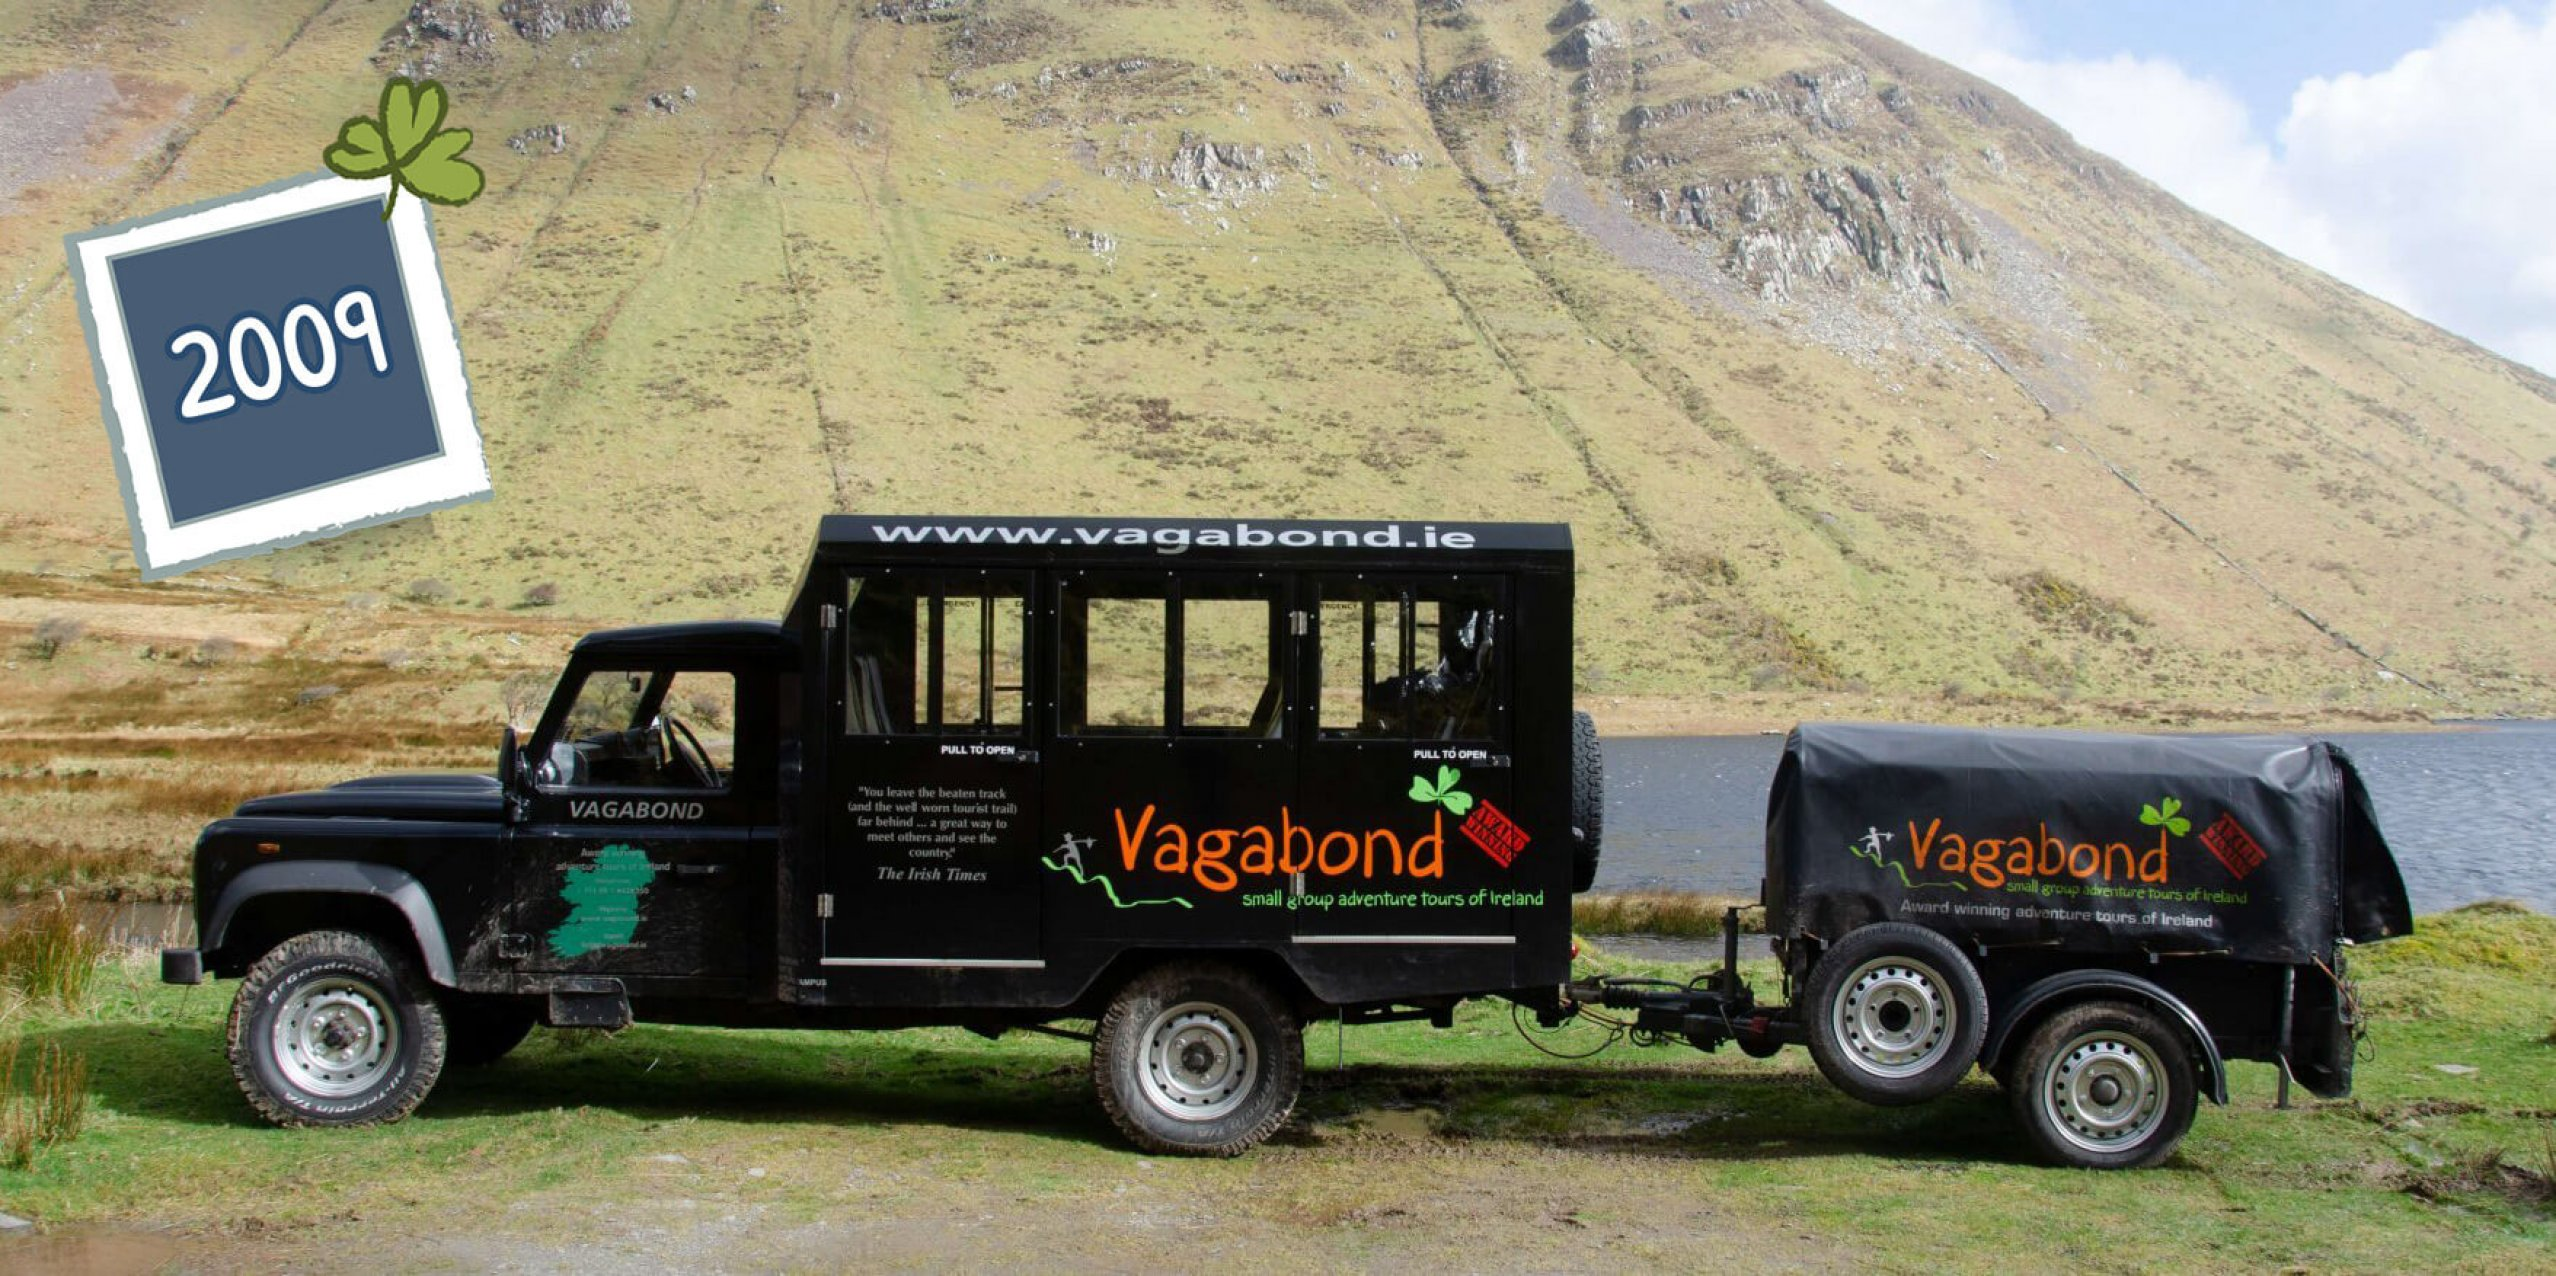 An original Land Rover Defender VagaTron tour vehicle with branded trailer parked in a scenic location in Ireland; side view